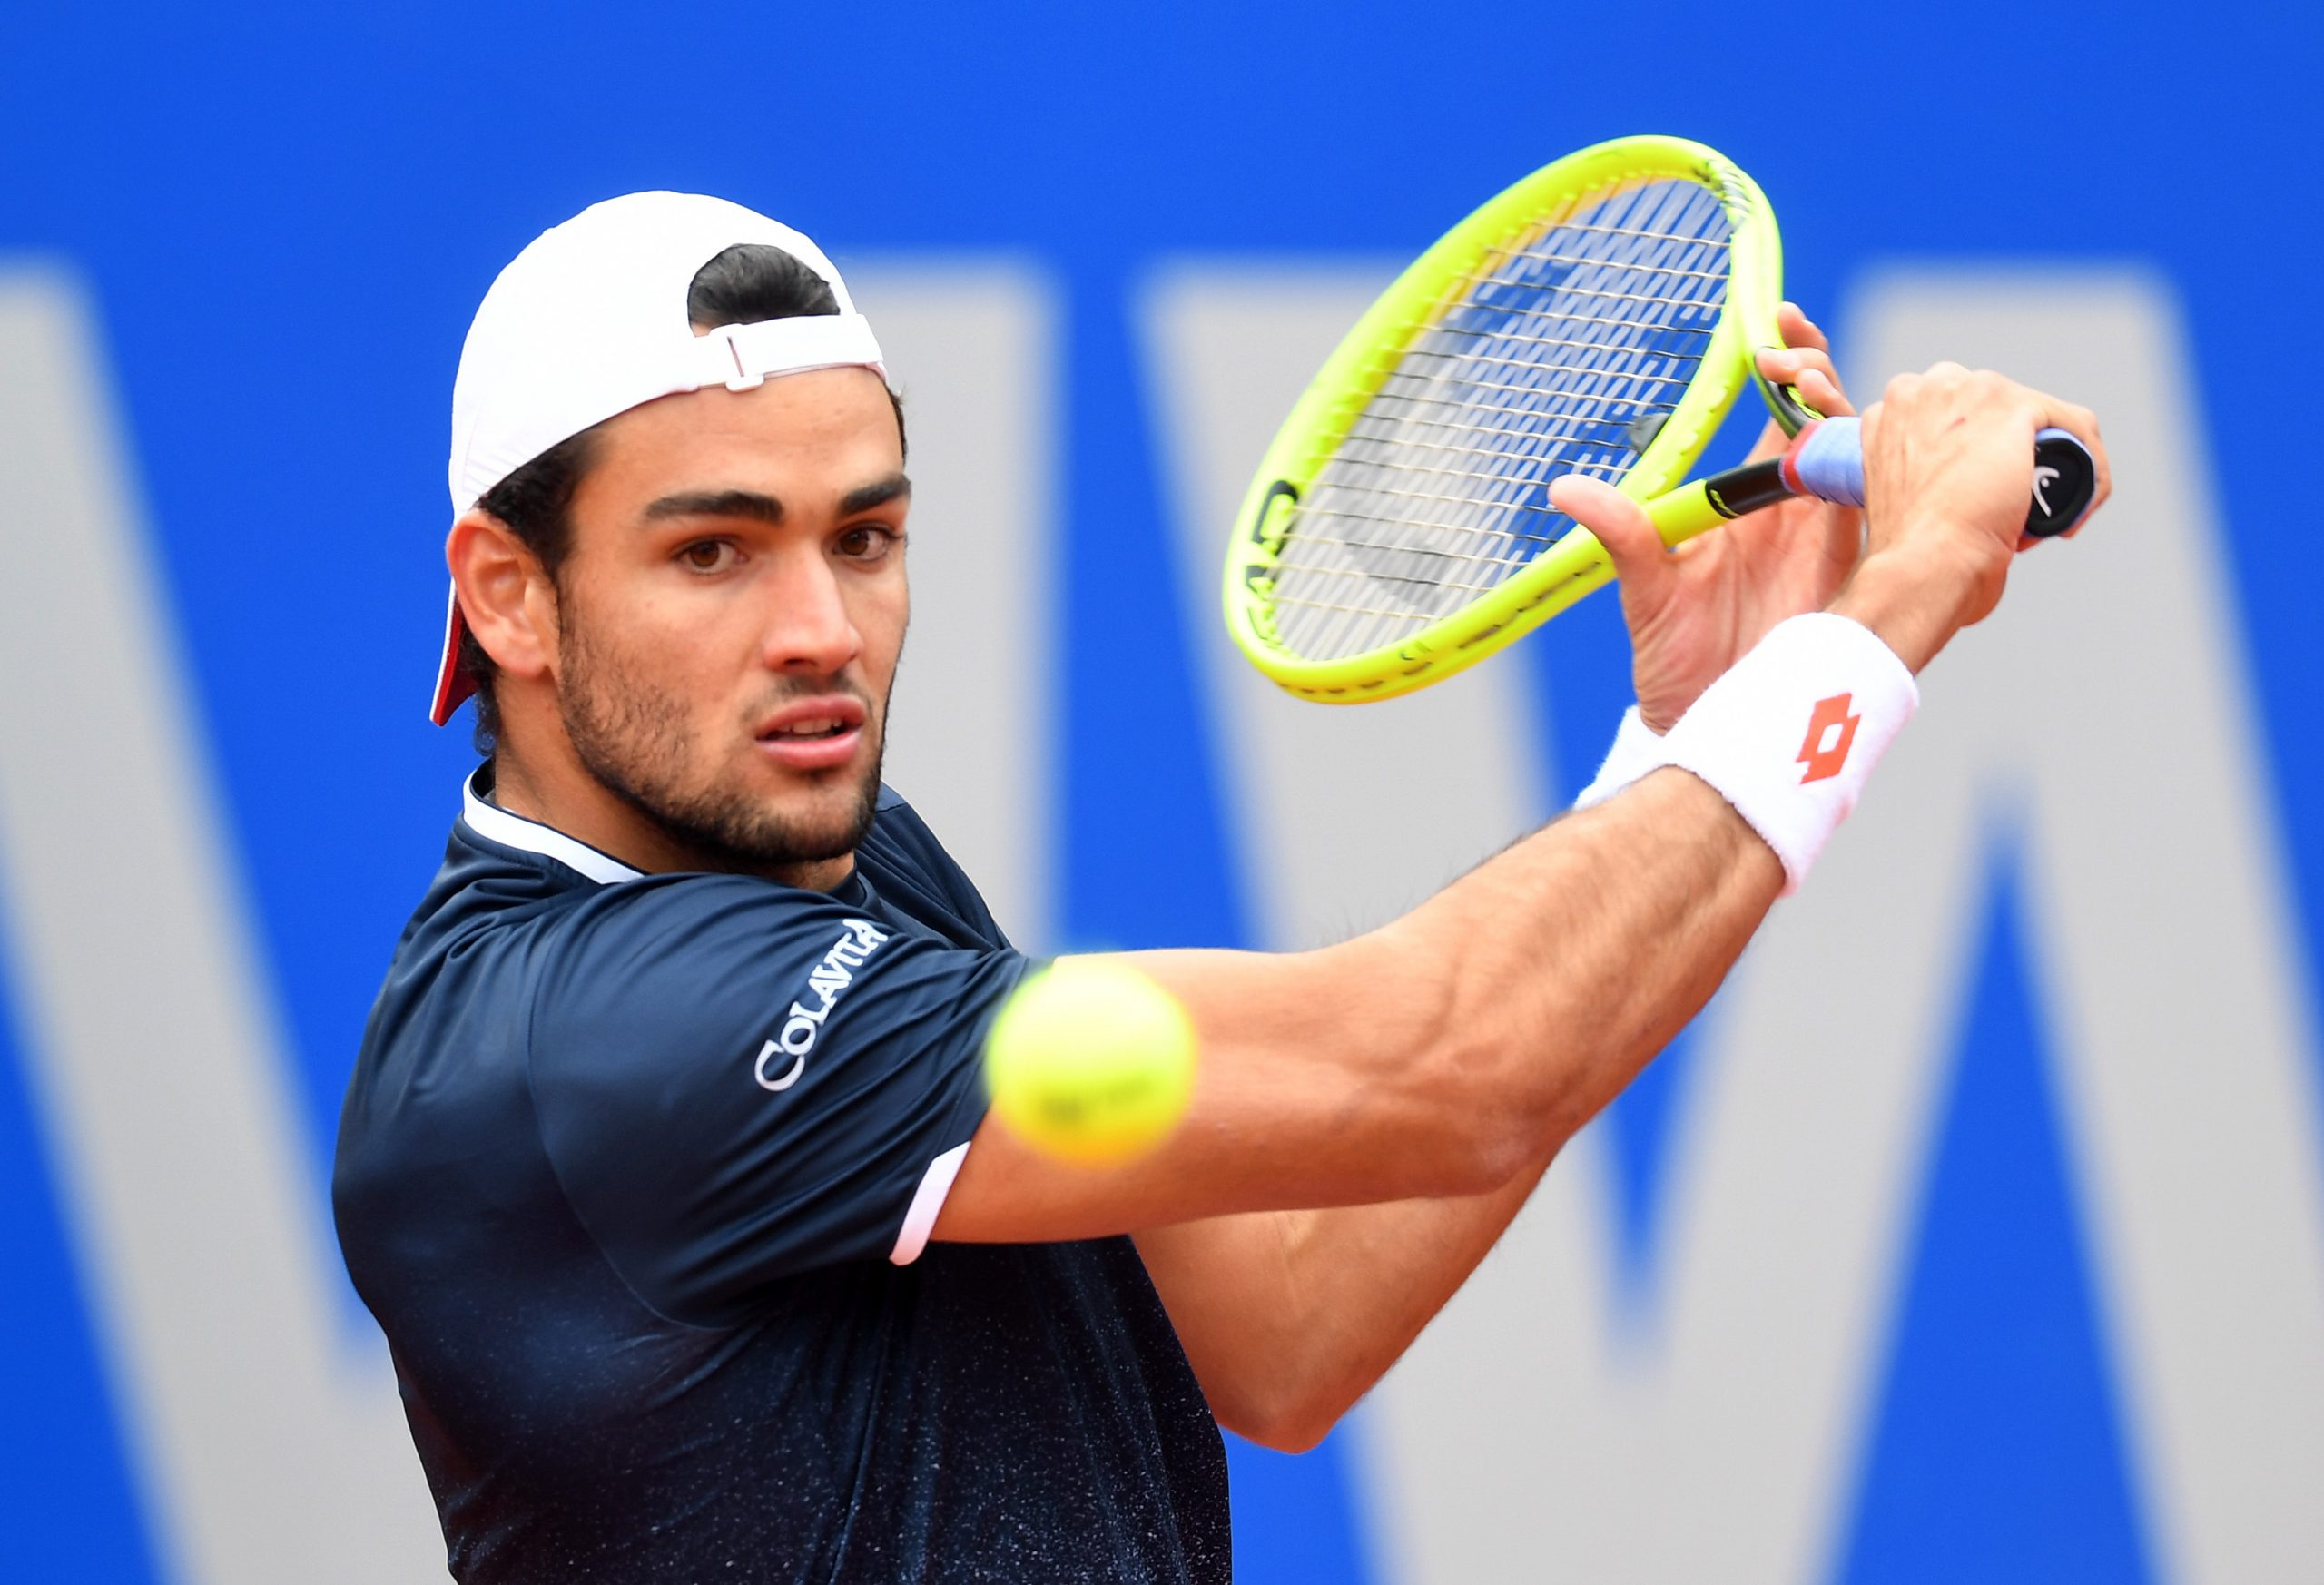 Italy's Matteo Berrettini will meet Dominic Thiem in the final of the exhibition match in Germany.